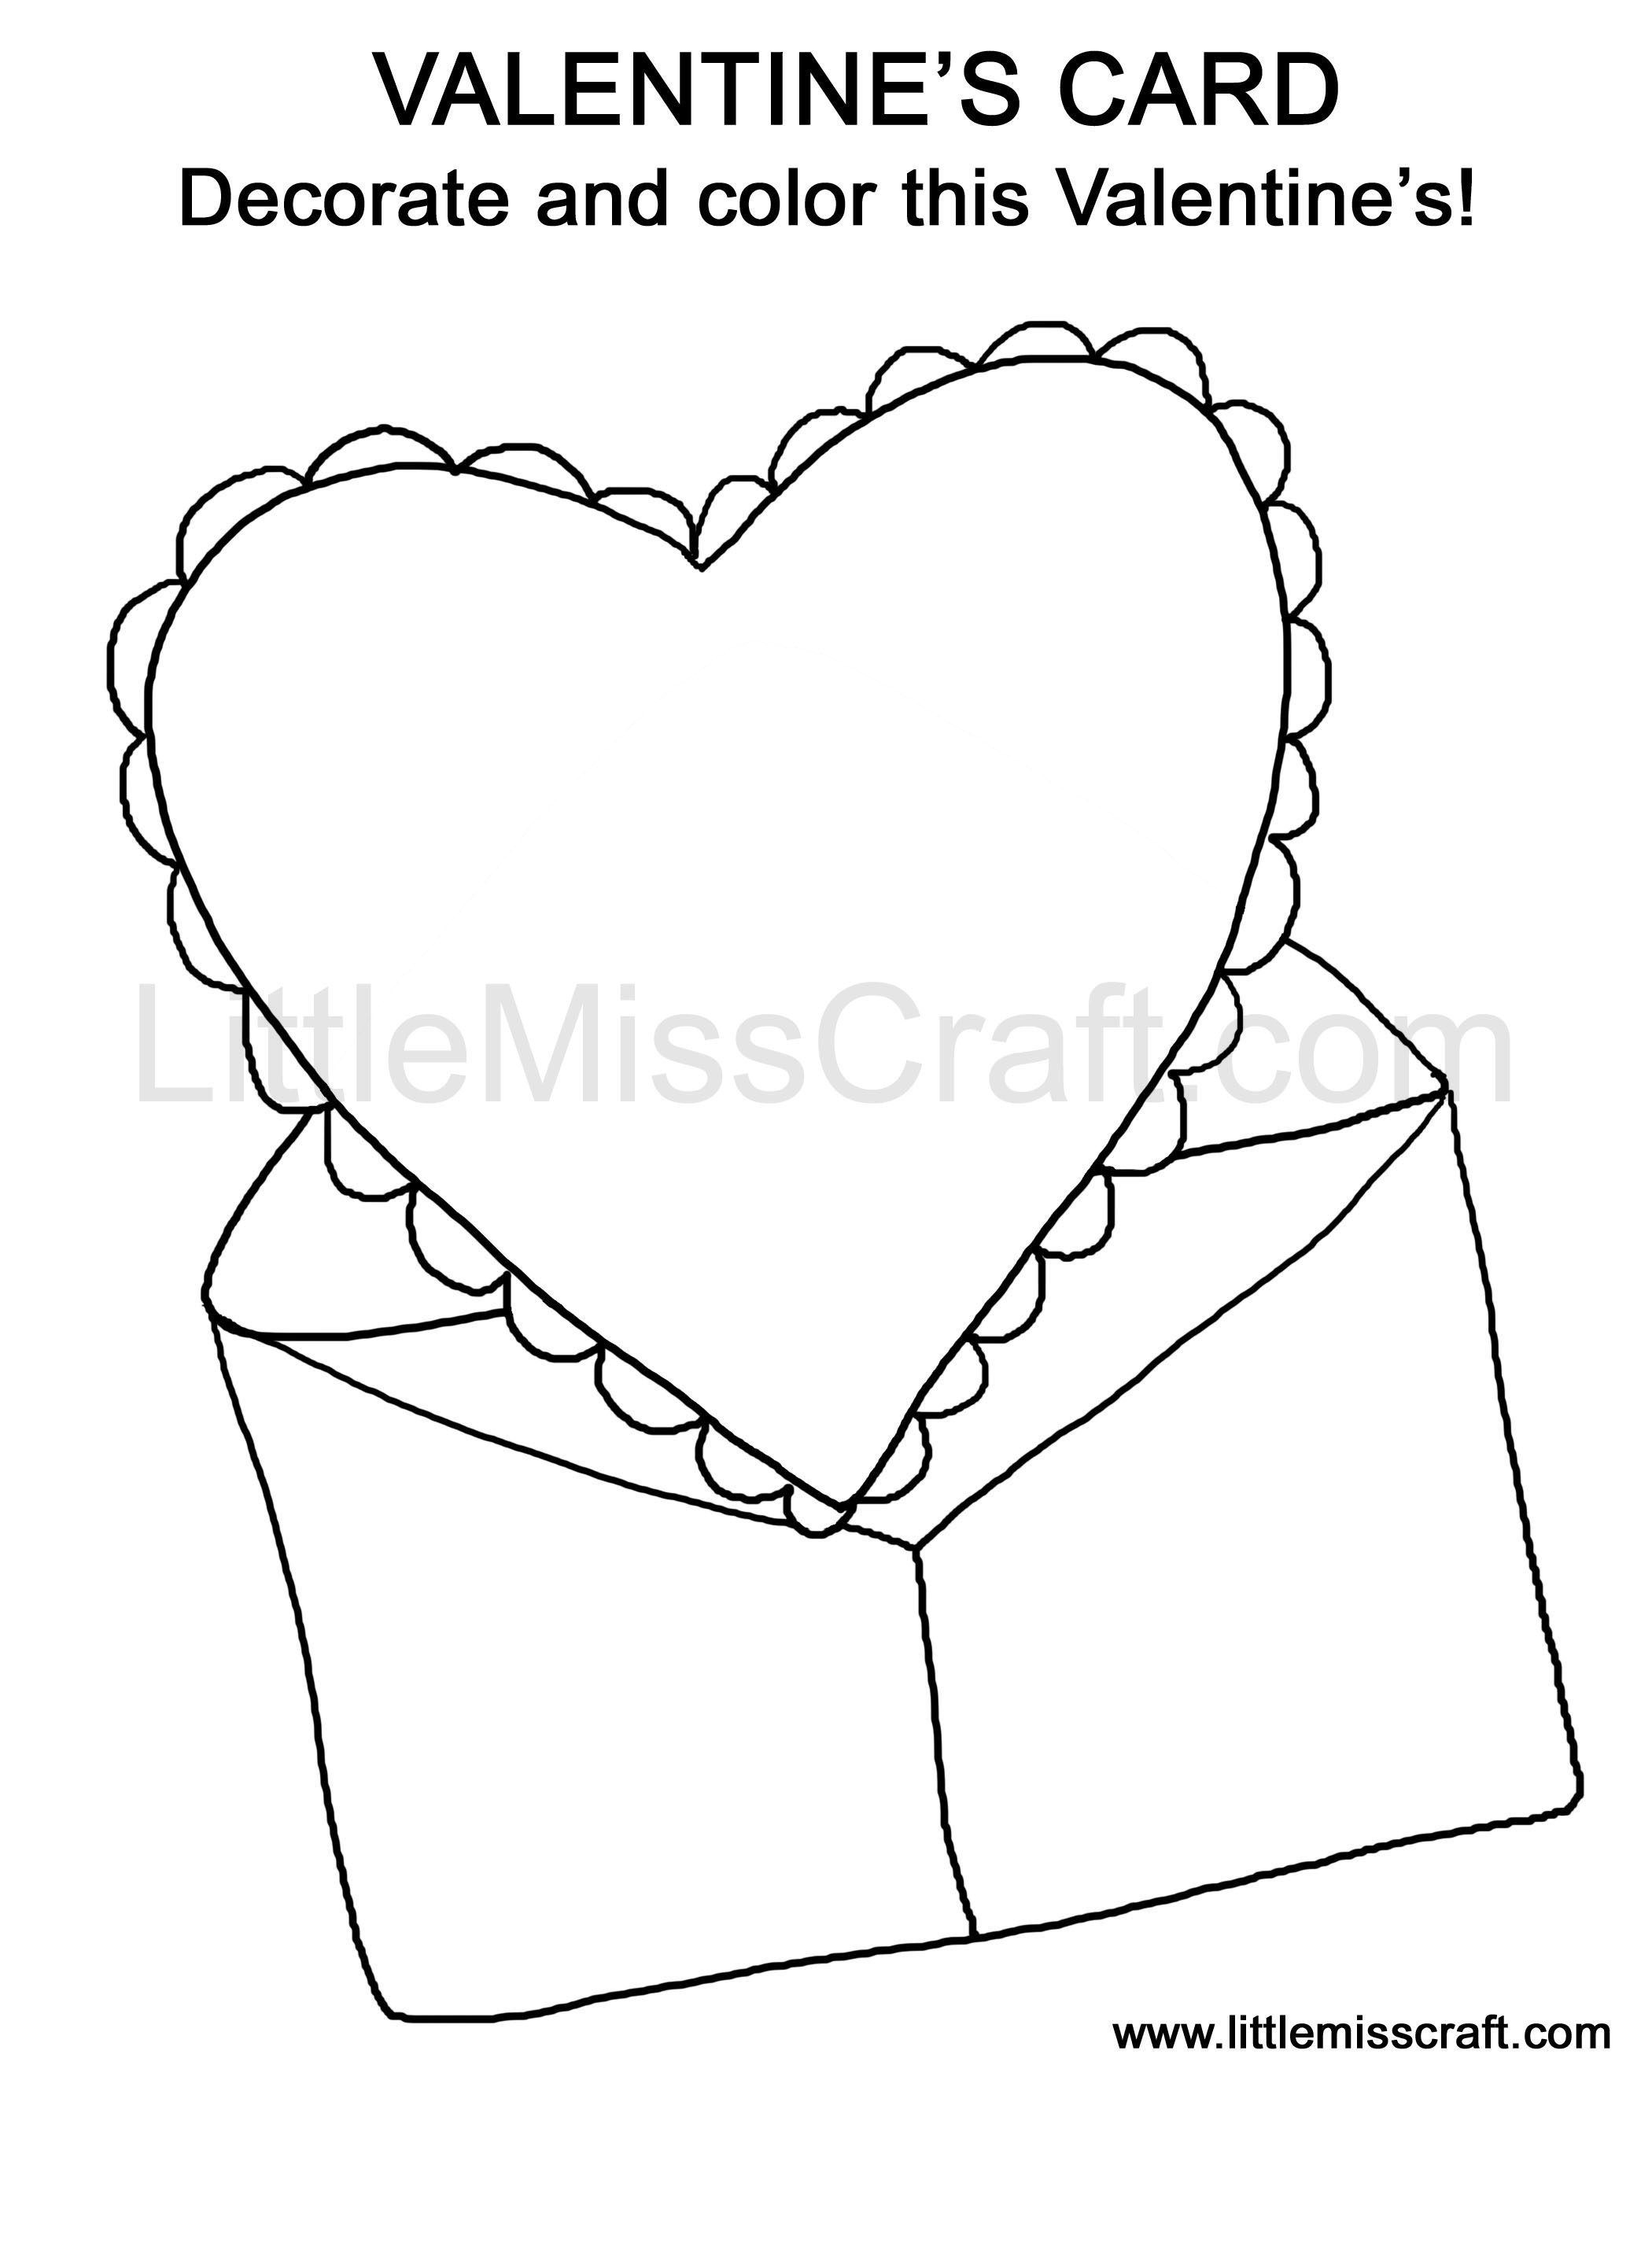 valentins day crafts an coloring pages - photo #27